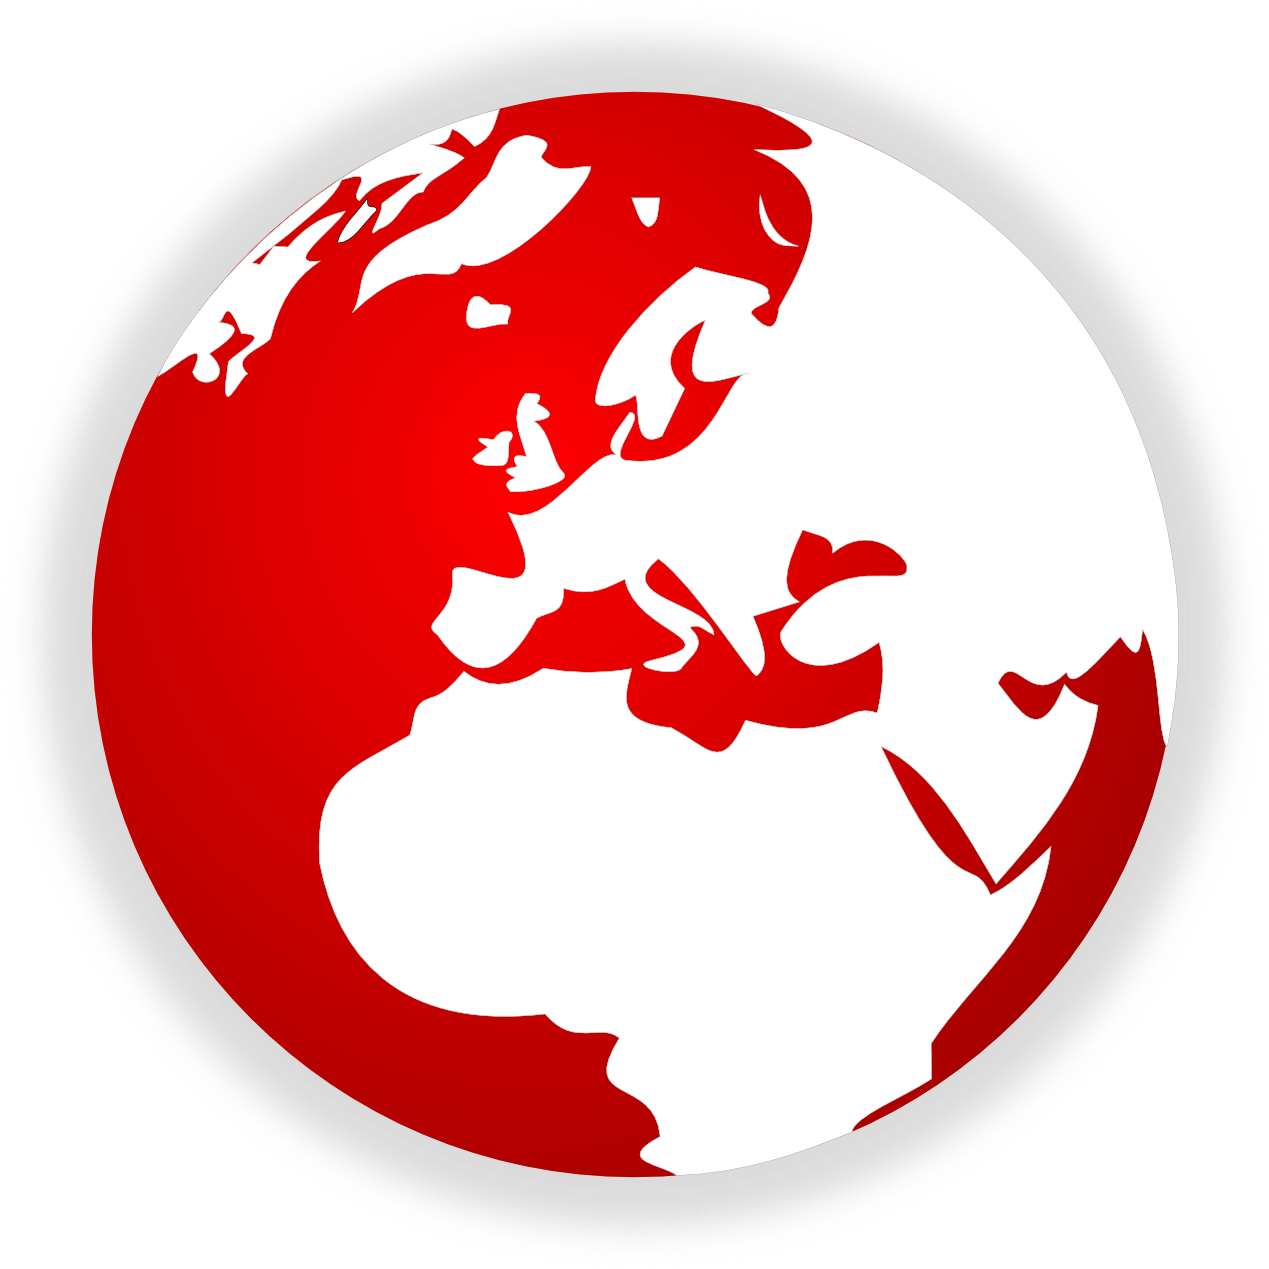 Red-world-free-images-at-clker-com-vector-clip-art-online